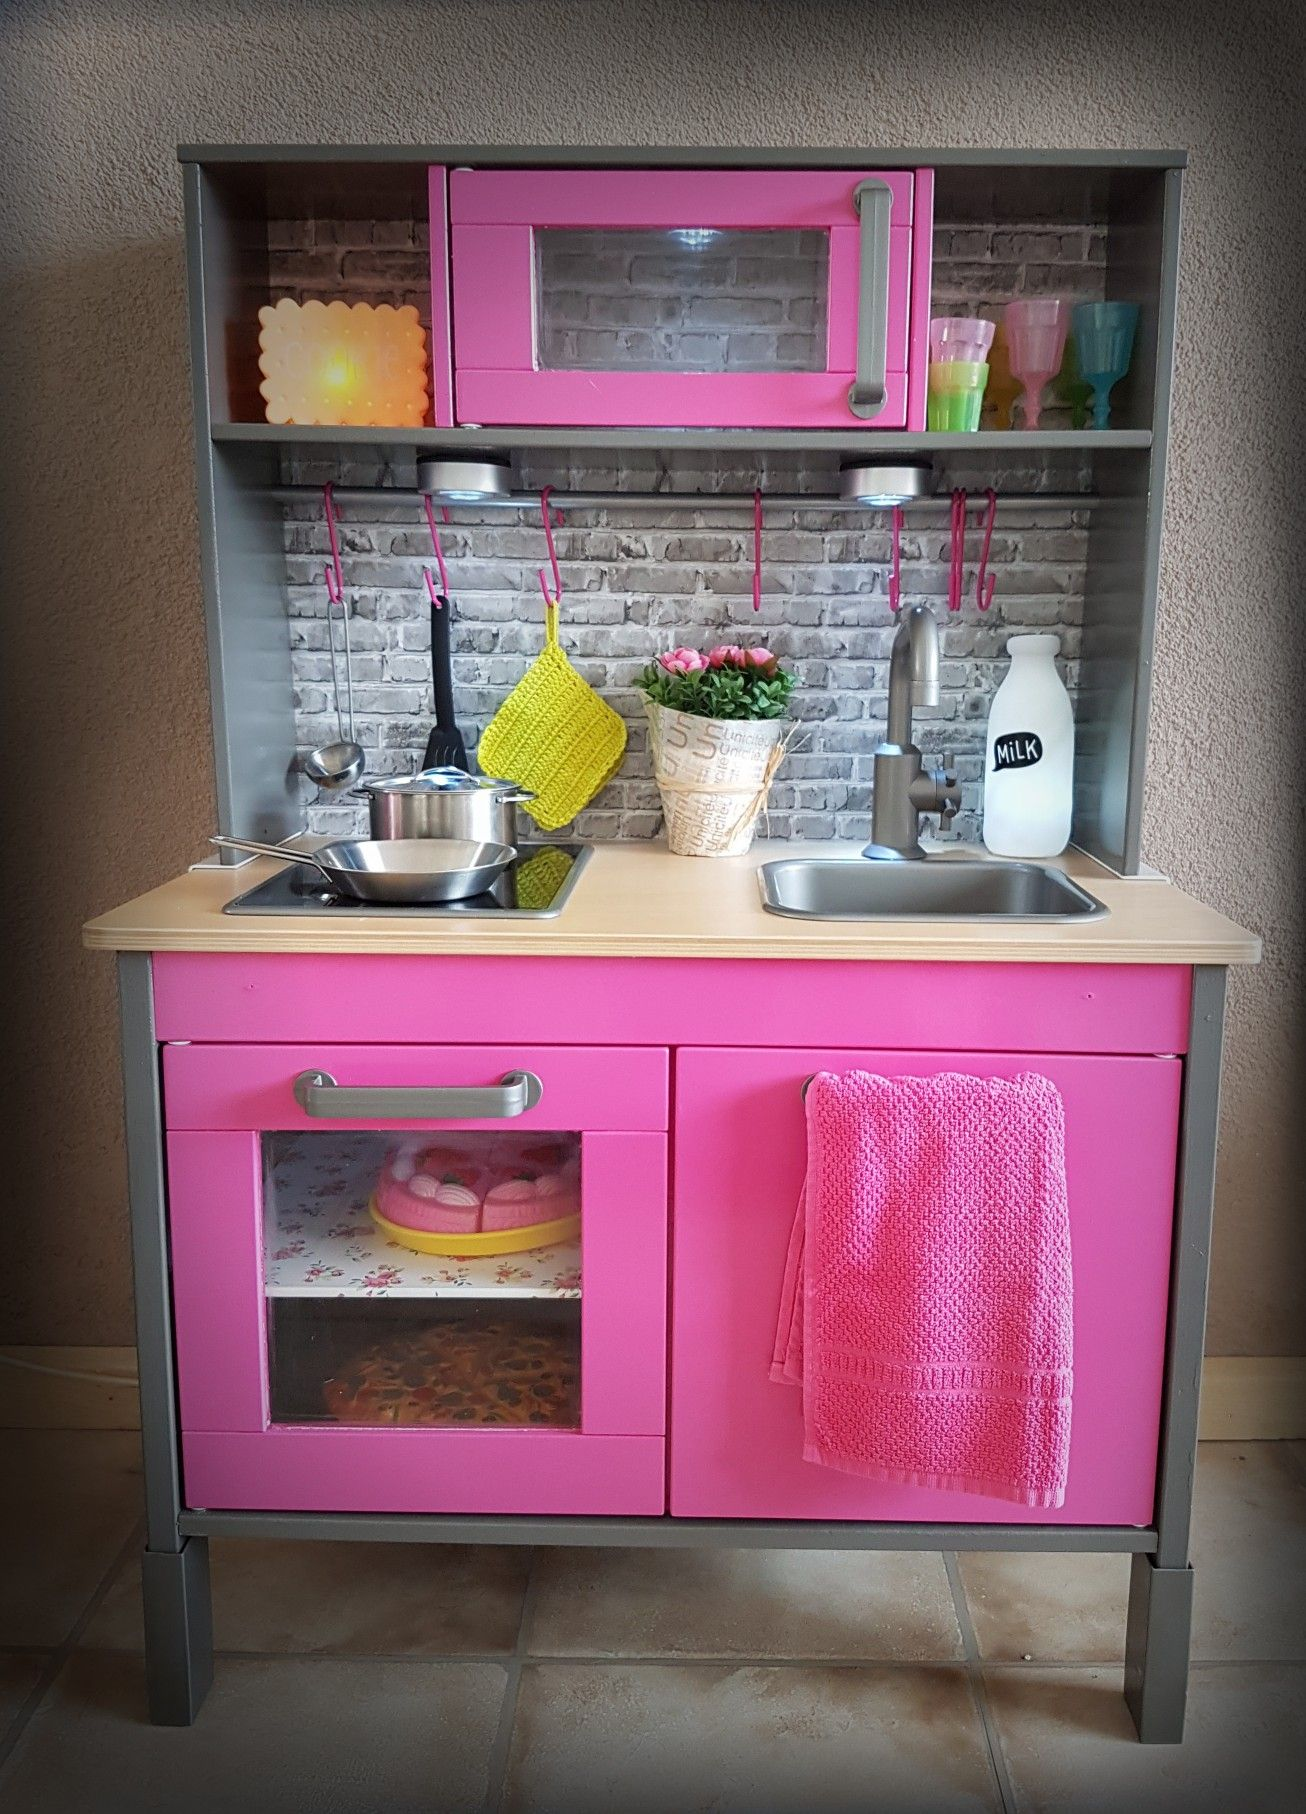 ikea duktig keukentje pimpen diy duktig hack verf donker grijs en intens roze van de gamma. Black Bedroom Furniture Sets. Home Design Ideas